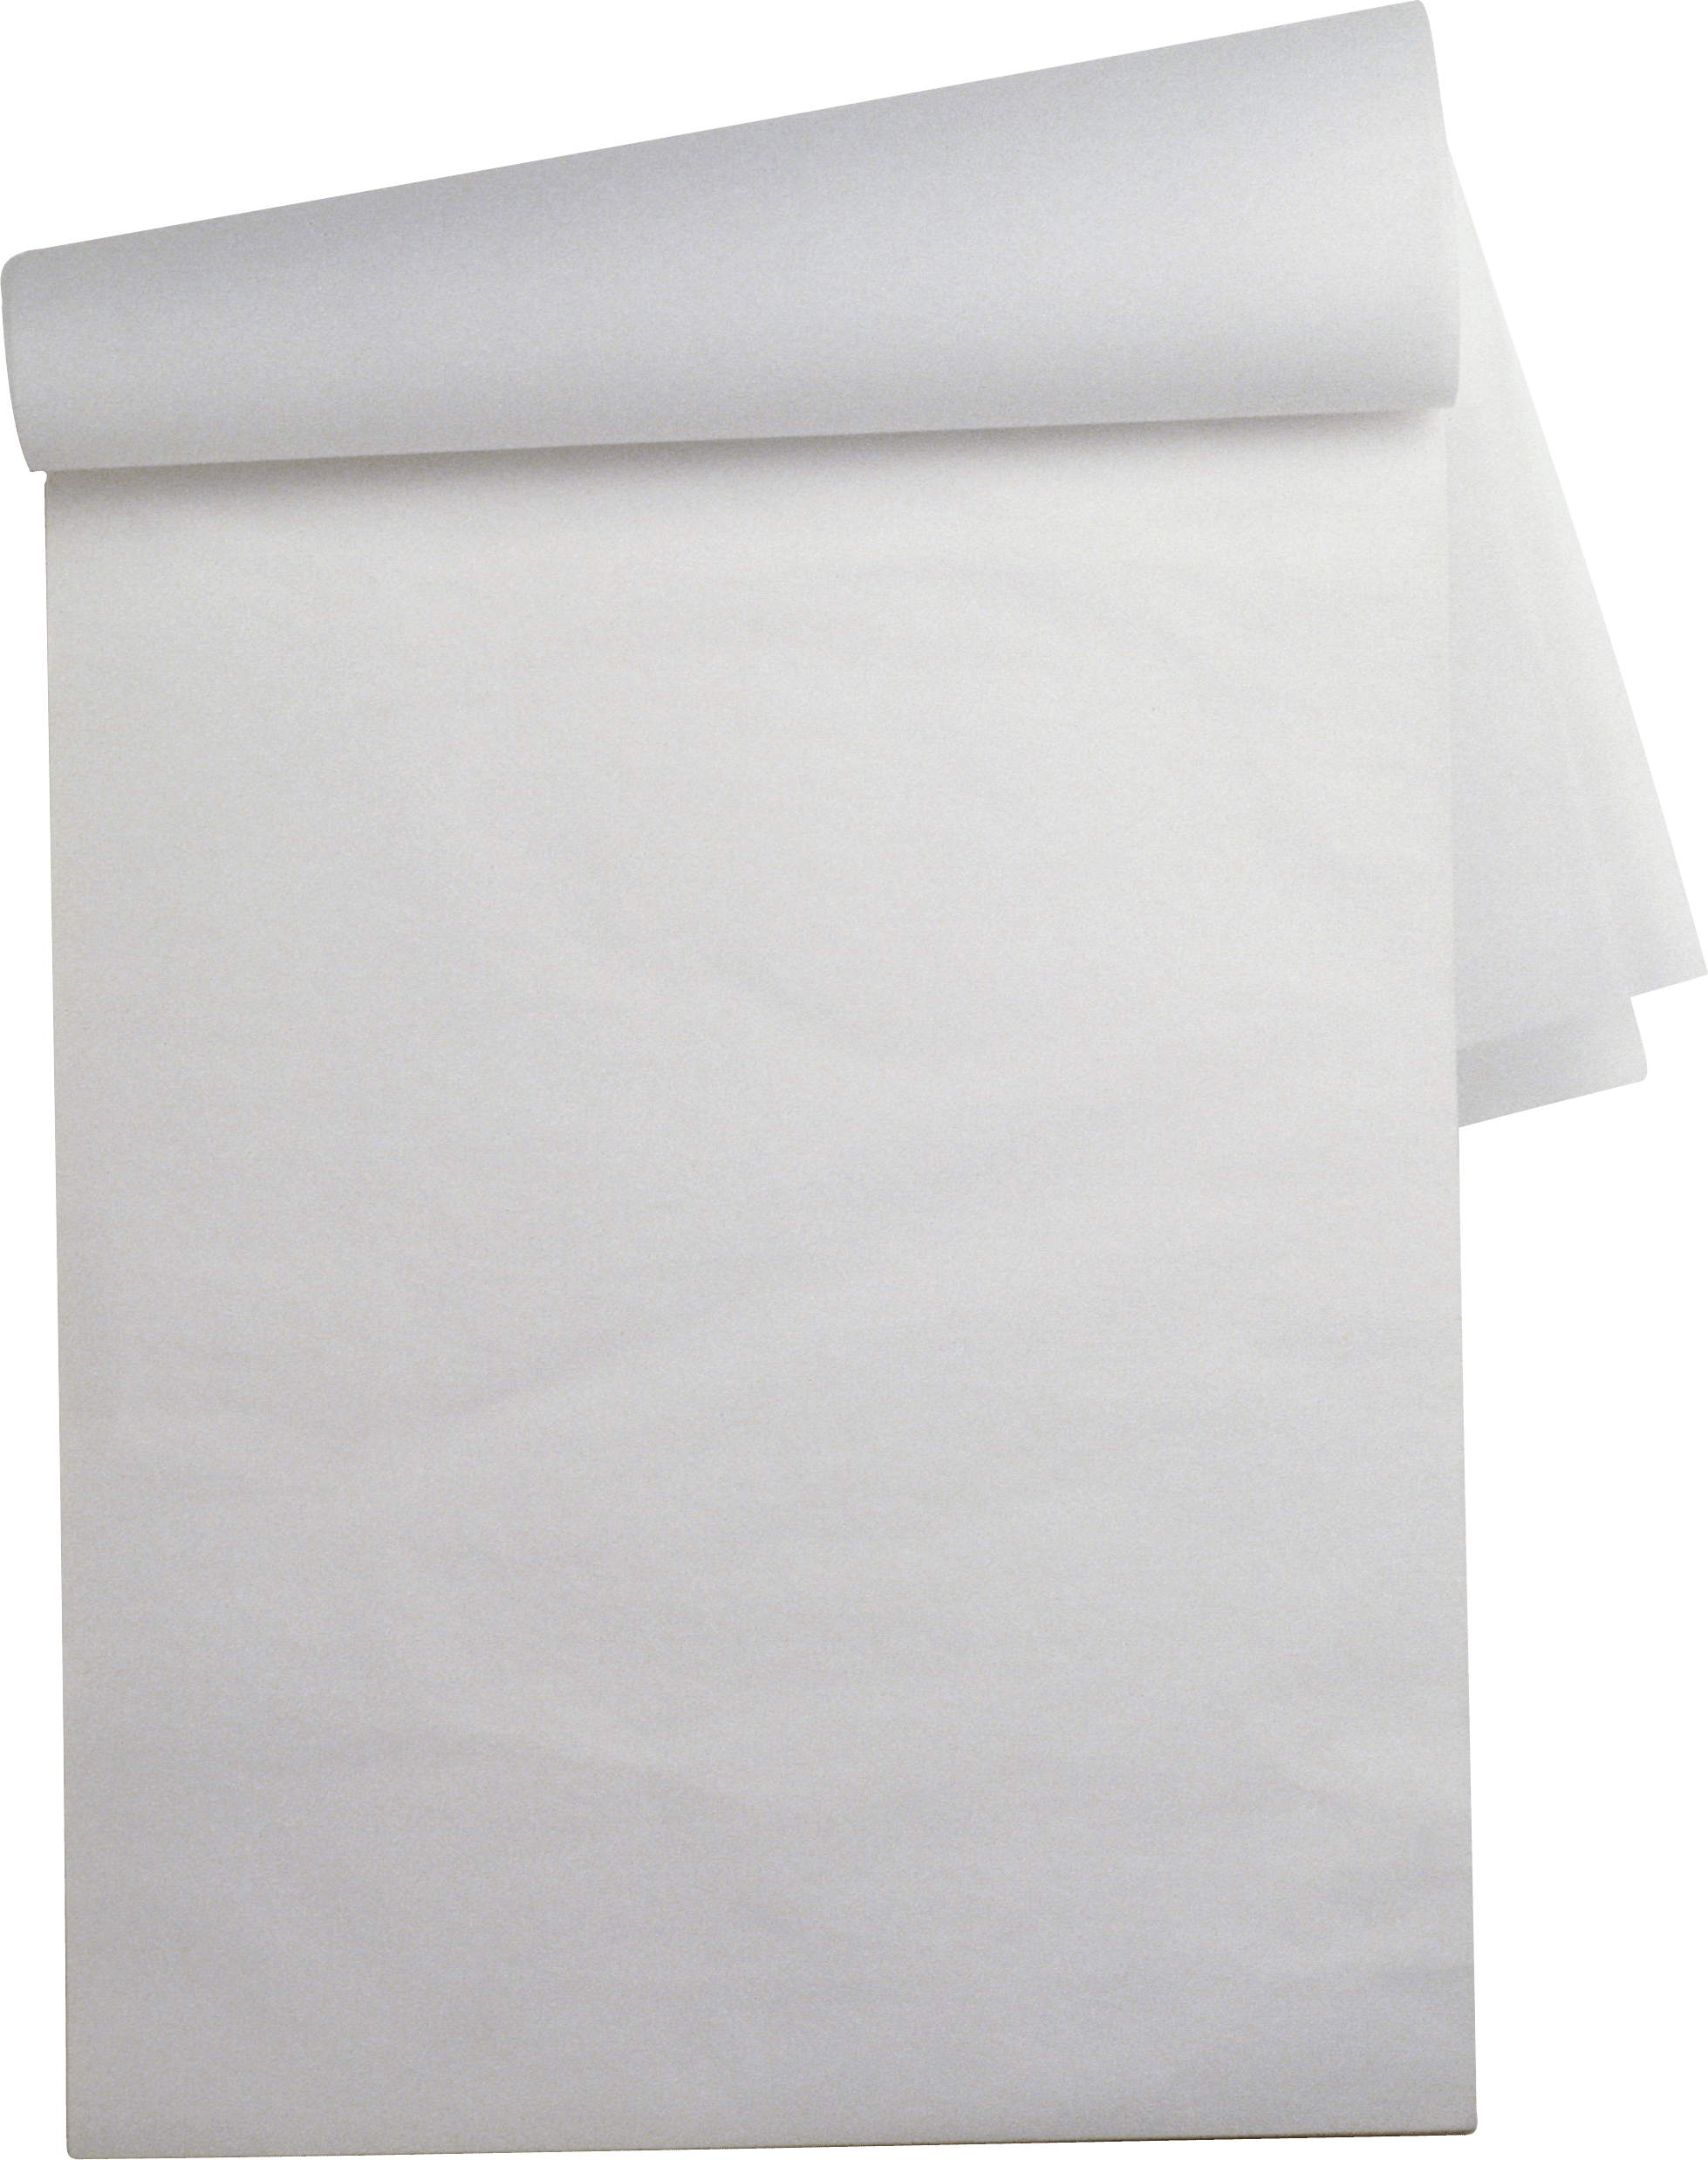 Sheet of paper clipart banner freeuse library White Folded Paper Sheet transparent PNG - StickPNG banner freeuse library